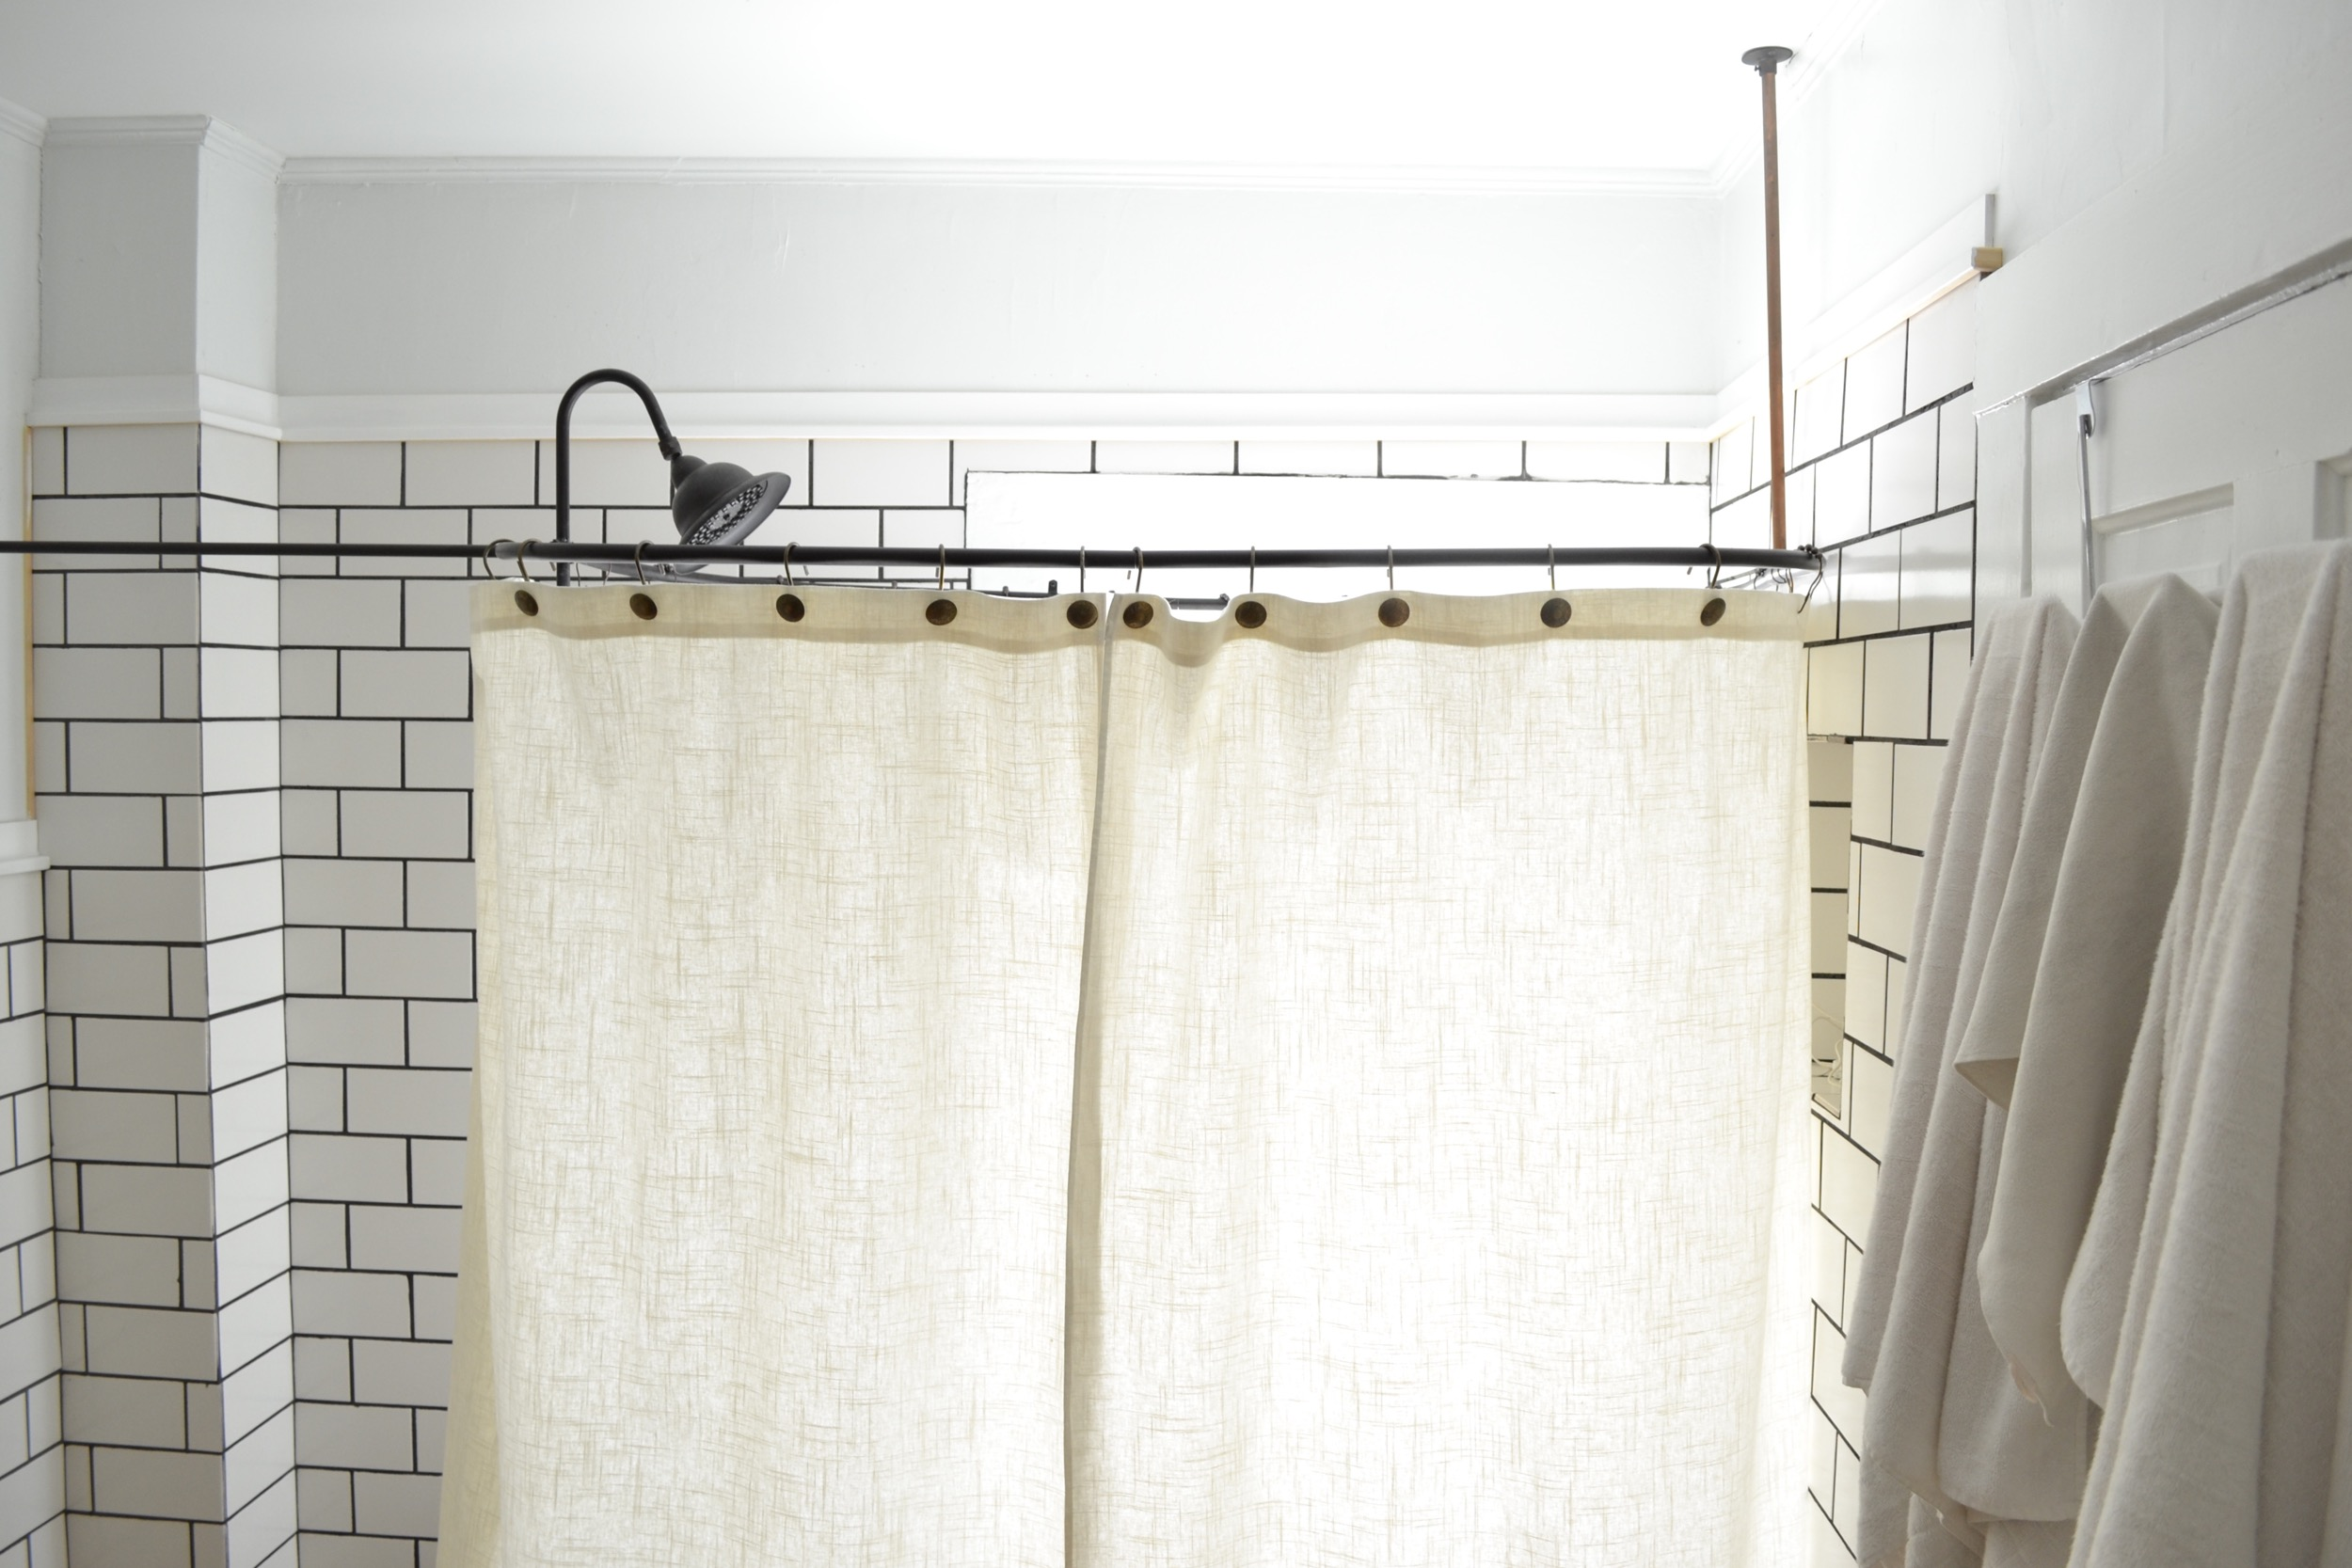 Diy Clawfoot Tub Shower Curtain Rod.A Diy Clawfoot Tub Shower Curtain For Your Clawfoot Tub